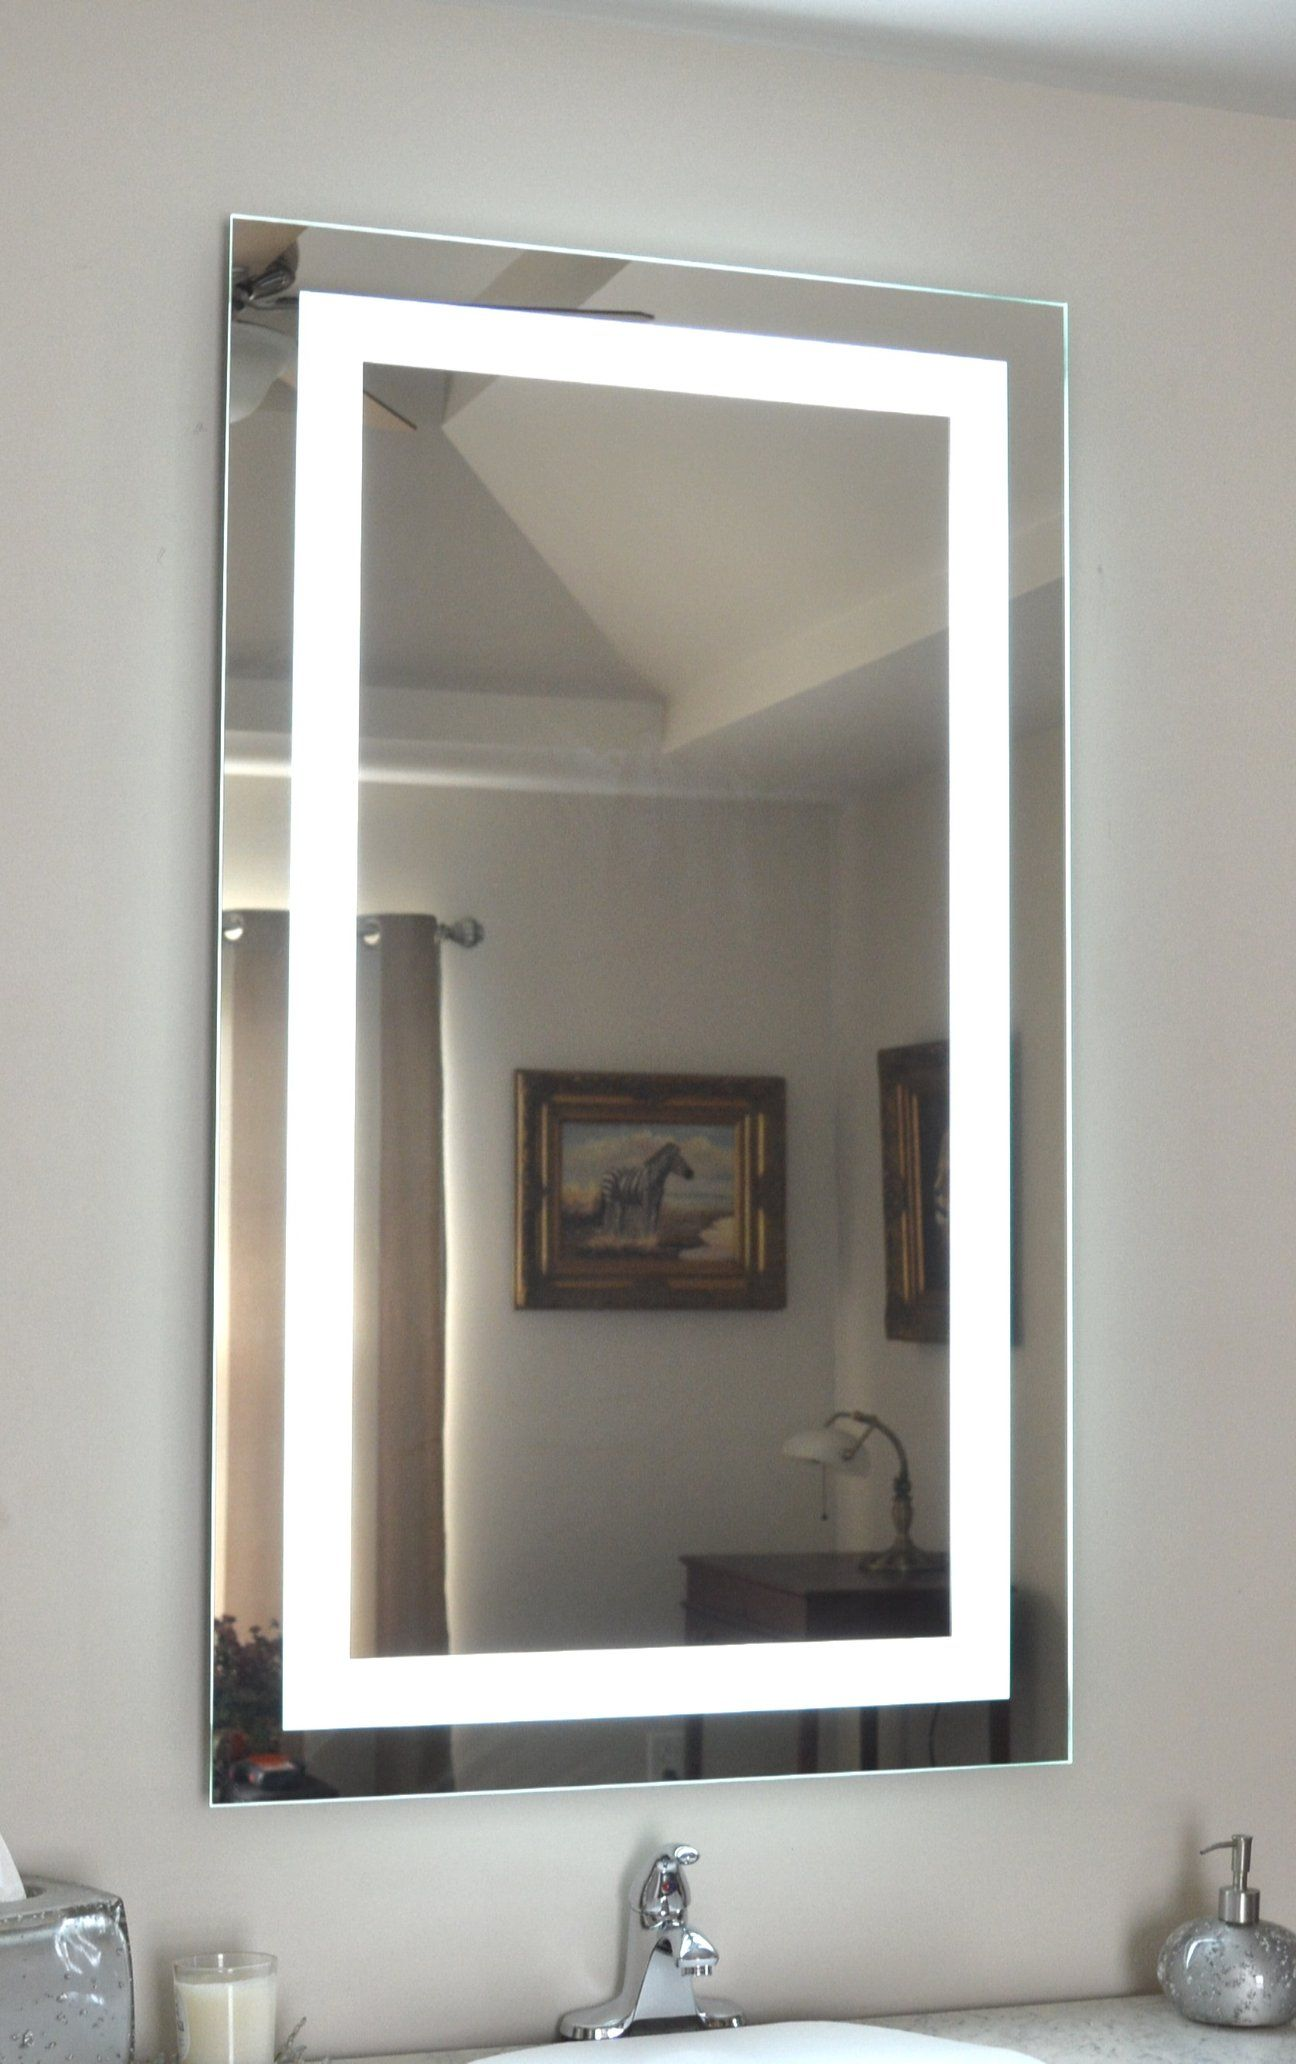 Front Lighted Led Bathroom Vanity Mirror 28 Wide X 48 Tall